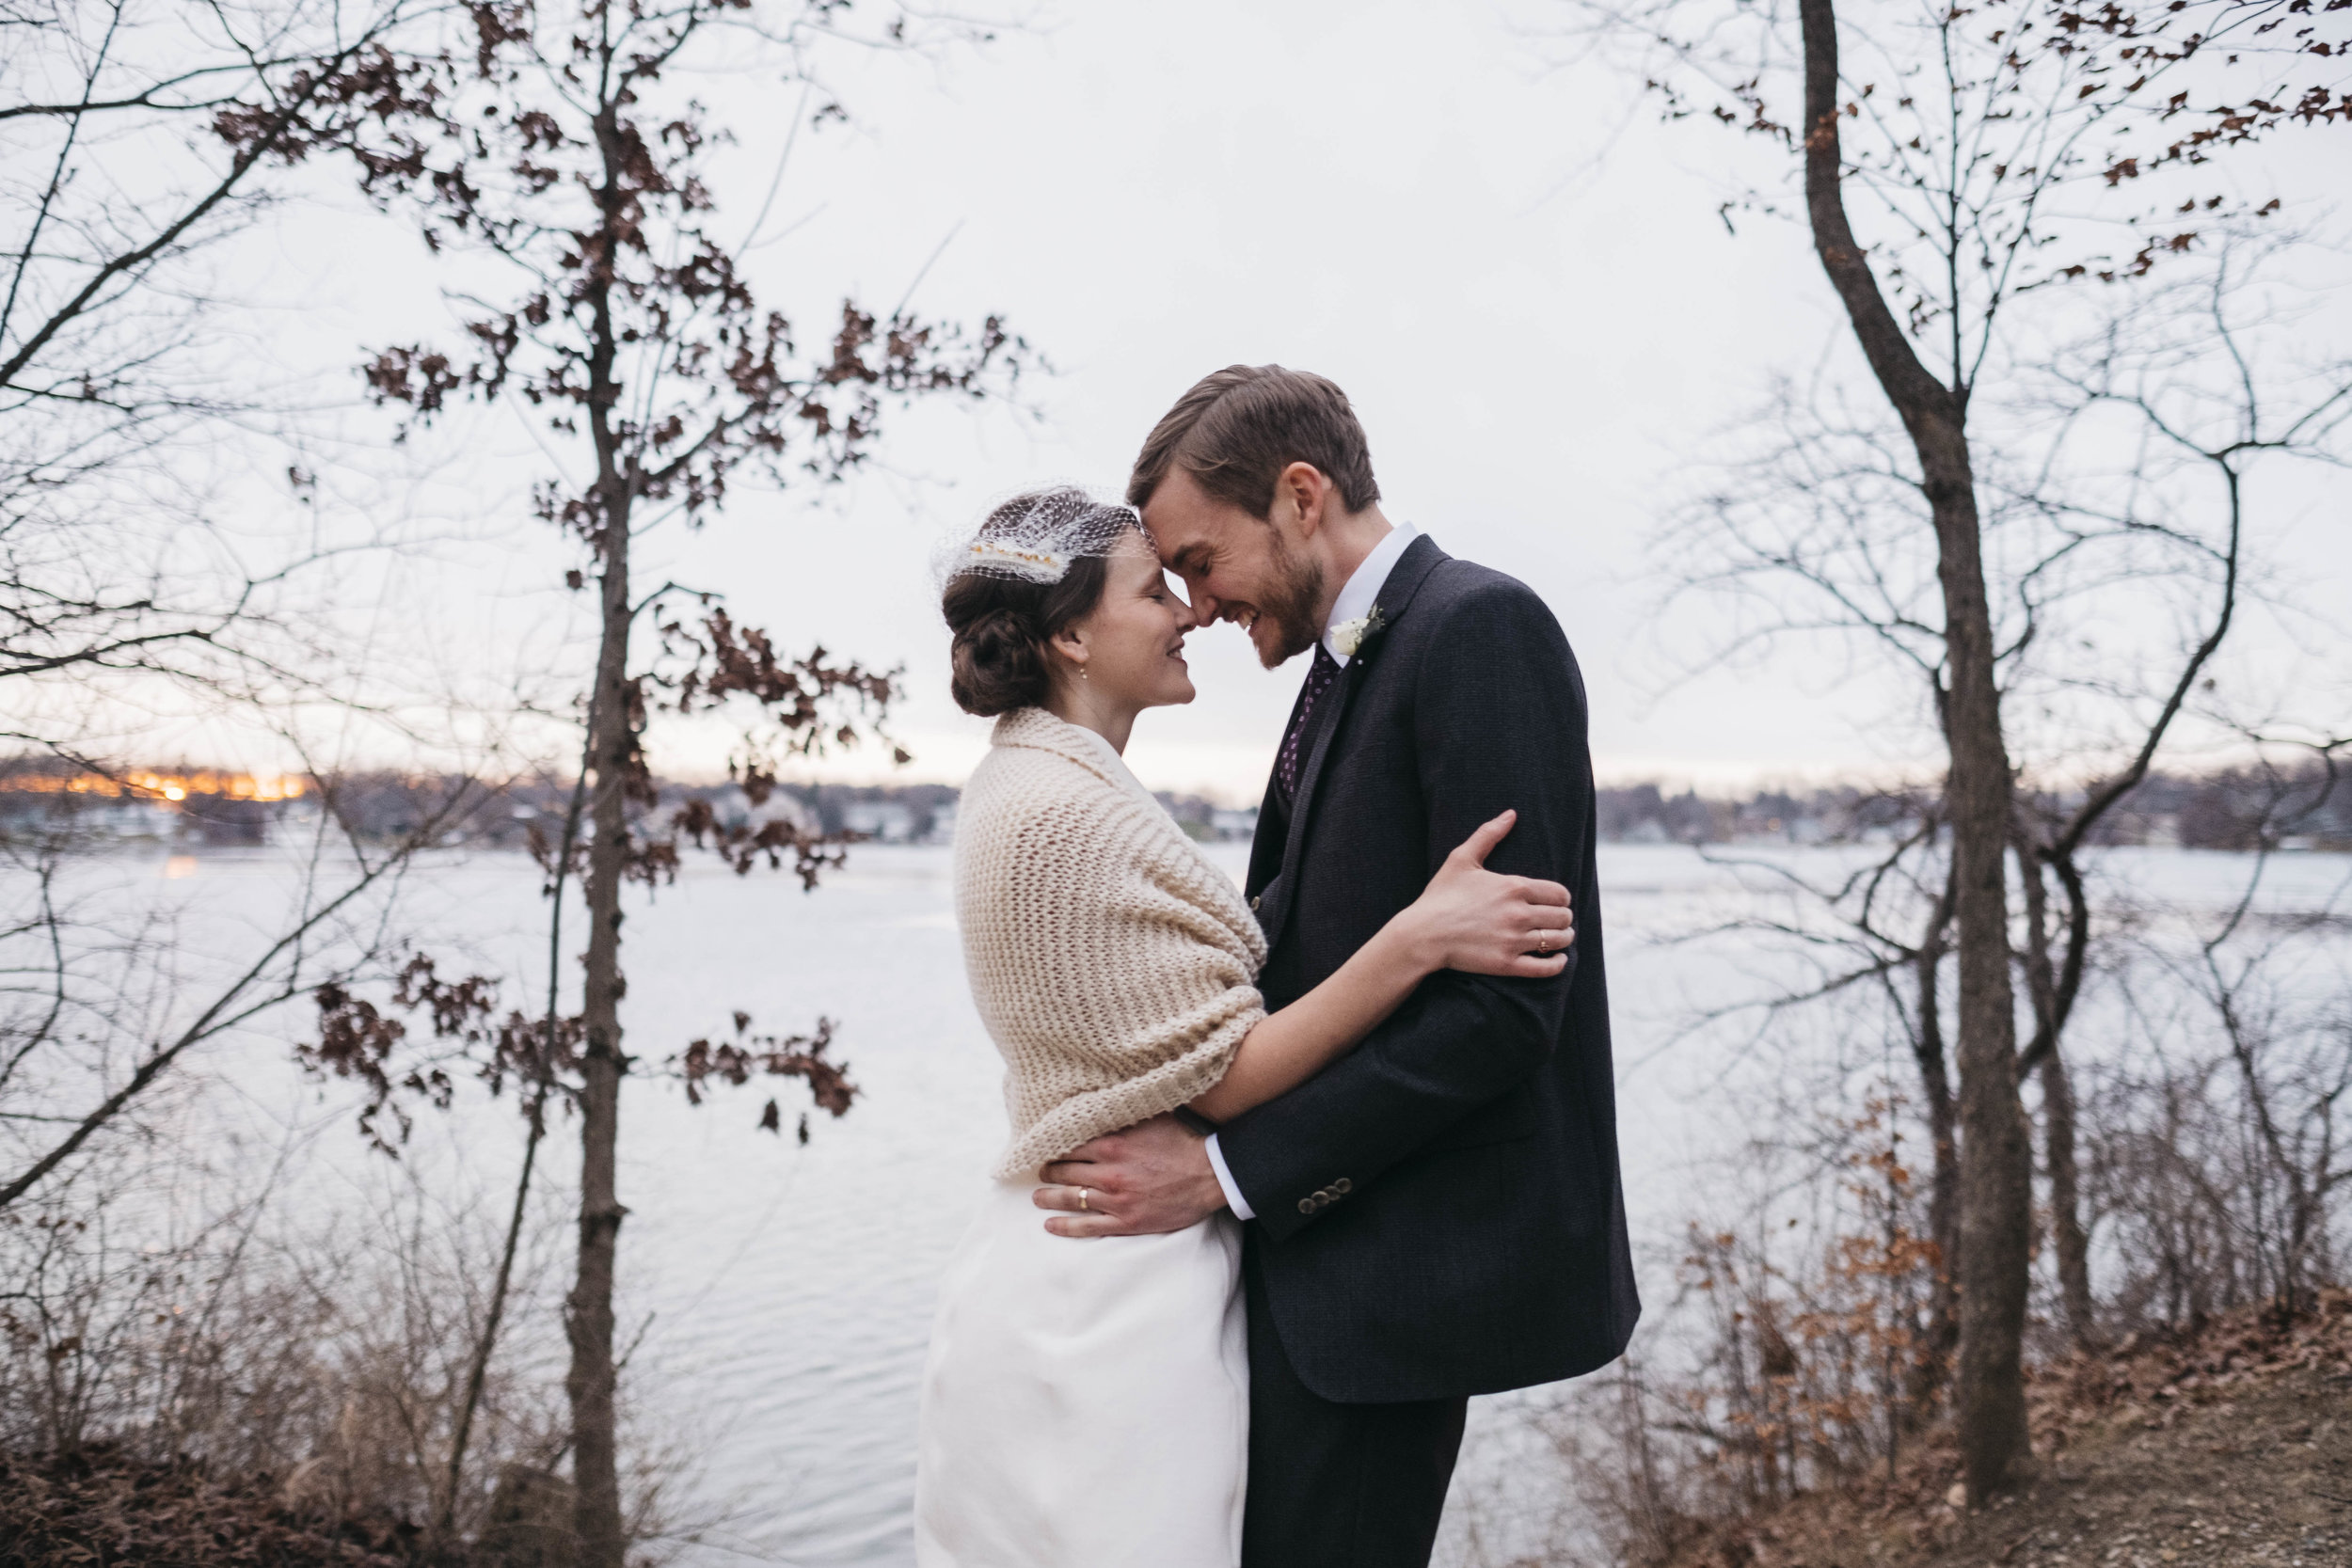 Bride and groom in winter wedding at Pokagon State Park.